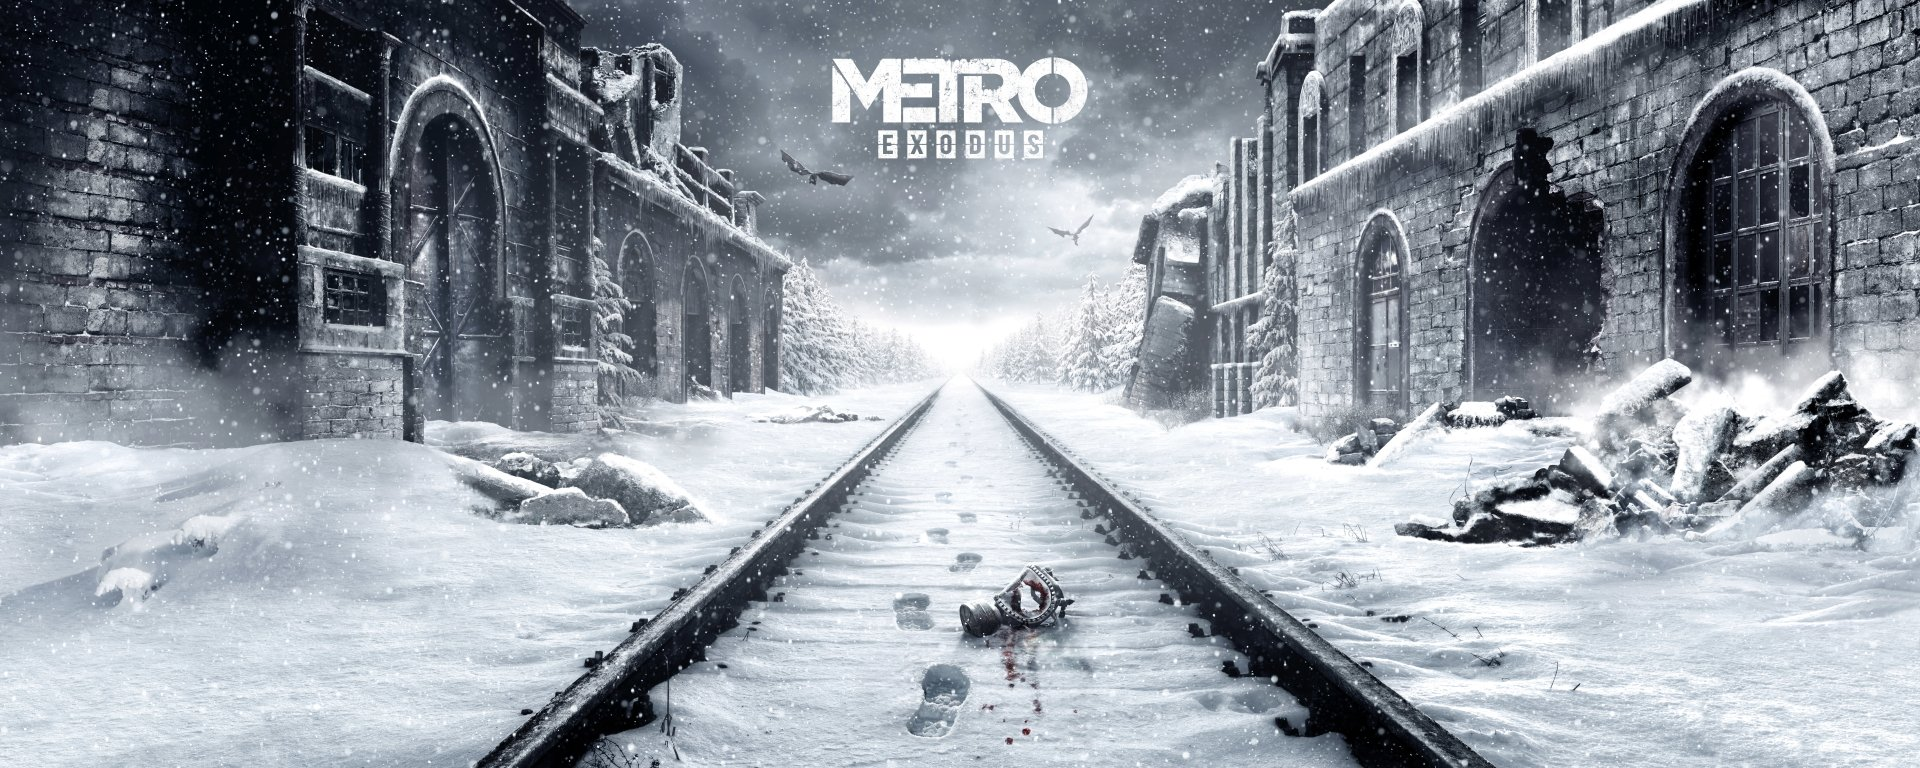 Metro Exodus HD Wallpapers Backgrounds Wallpaper